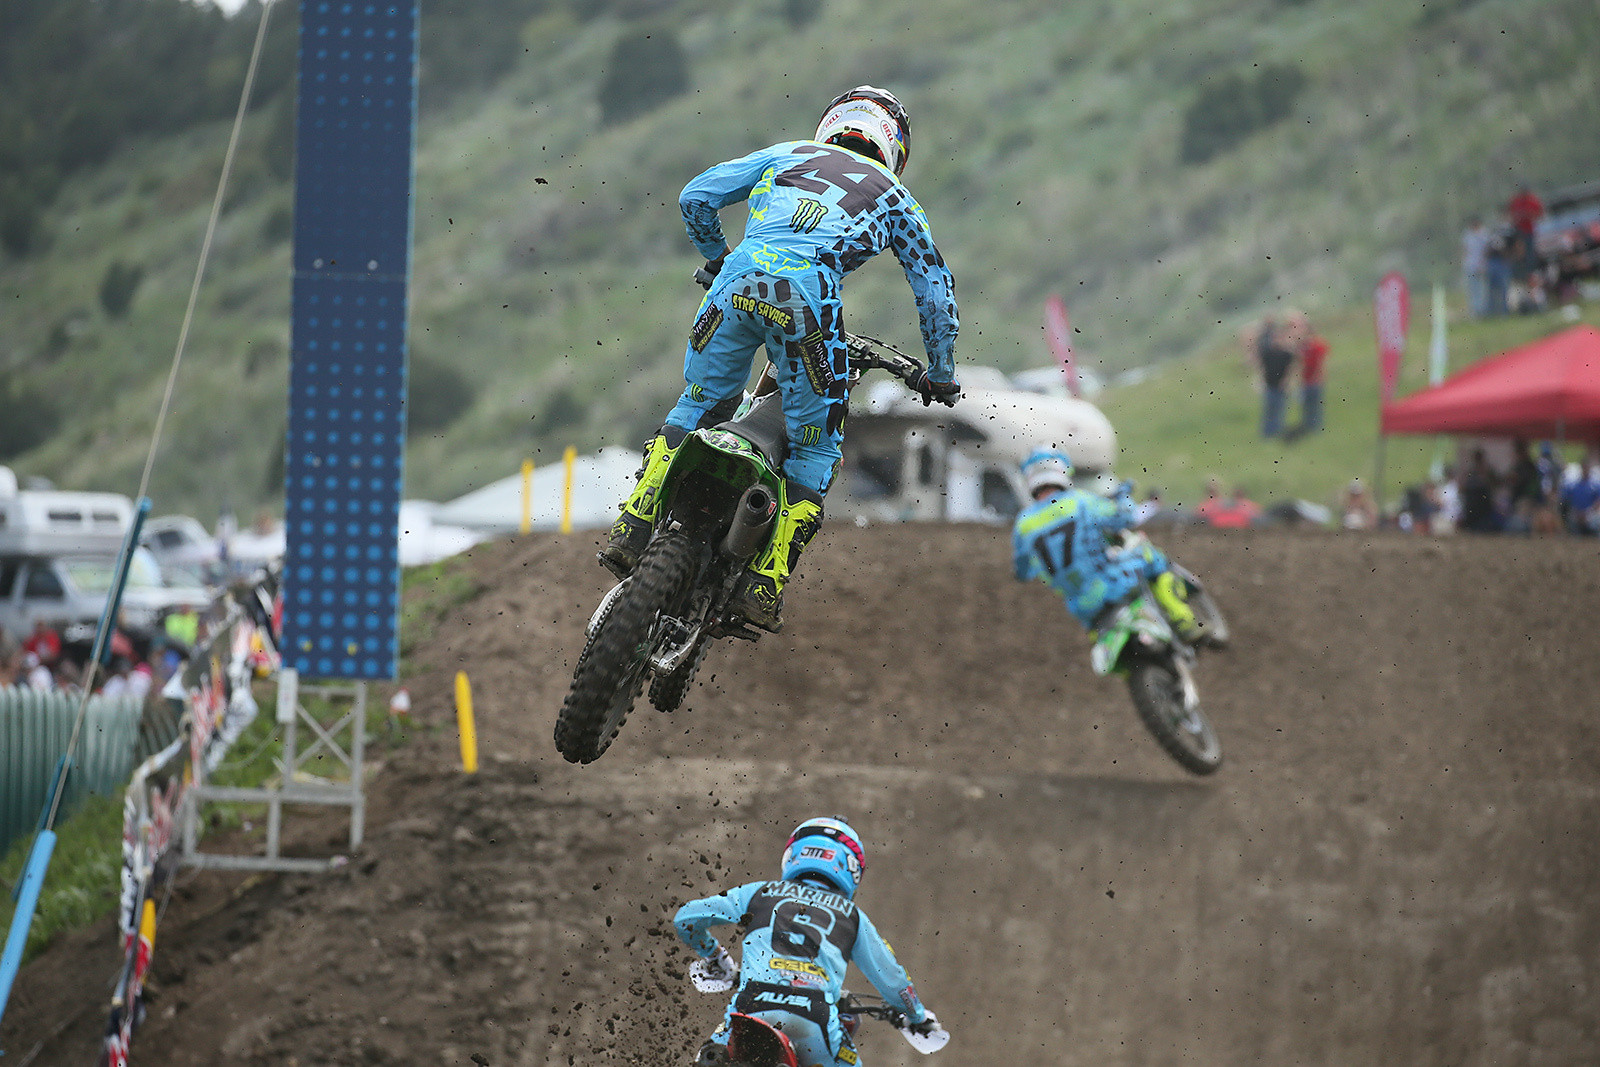 Austin Forkner was upset after finishing with a 2-3 score, and still getting fourth overall. In the first moto, the top five were all spaced about this far apart, and they were all flying.